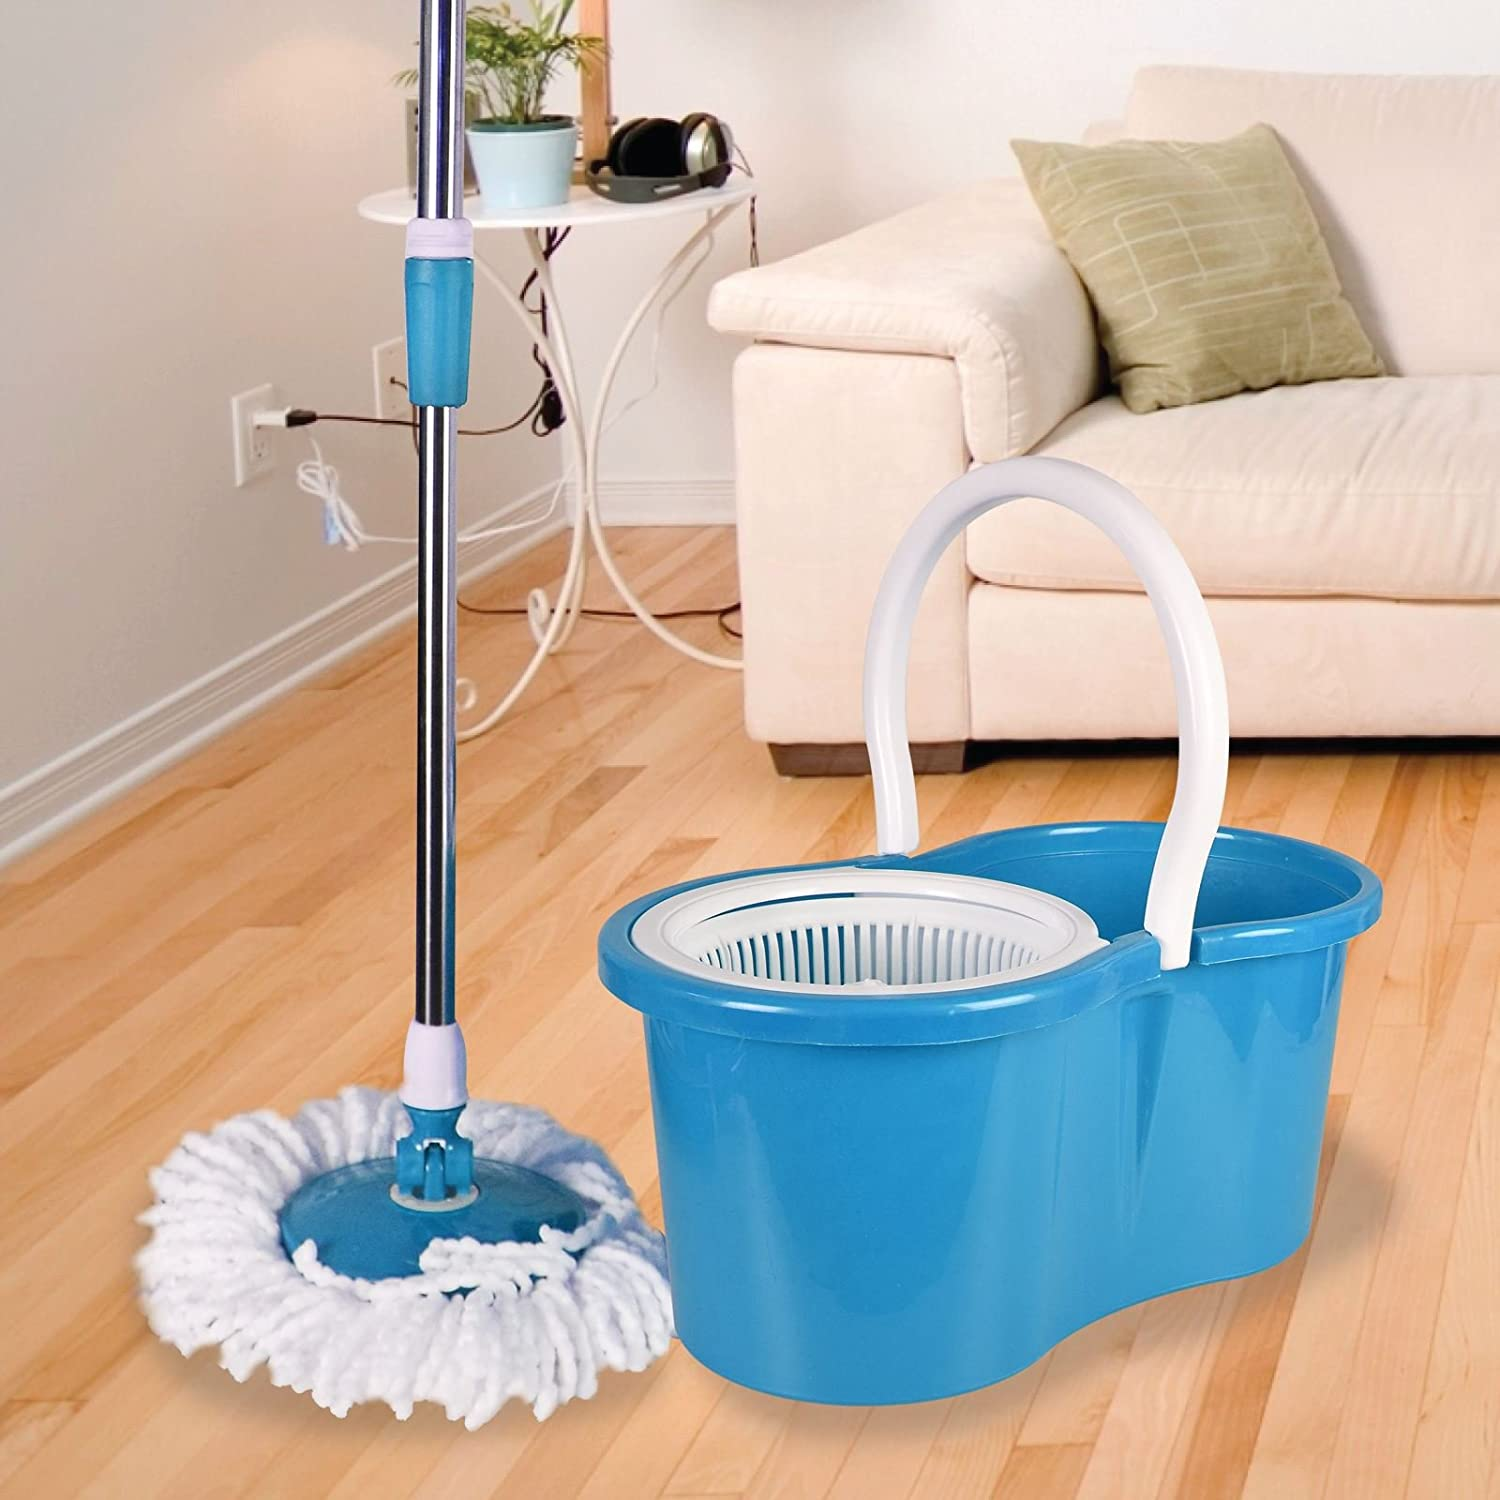 ASAB 360° Spinning Floor Mop and Bucket Set with 2 Microfibre Heads | Easy Wring | Adjustable Height (Grey)